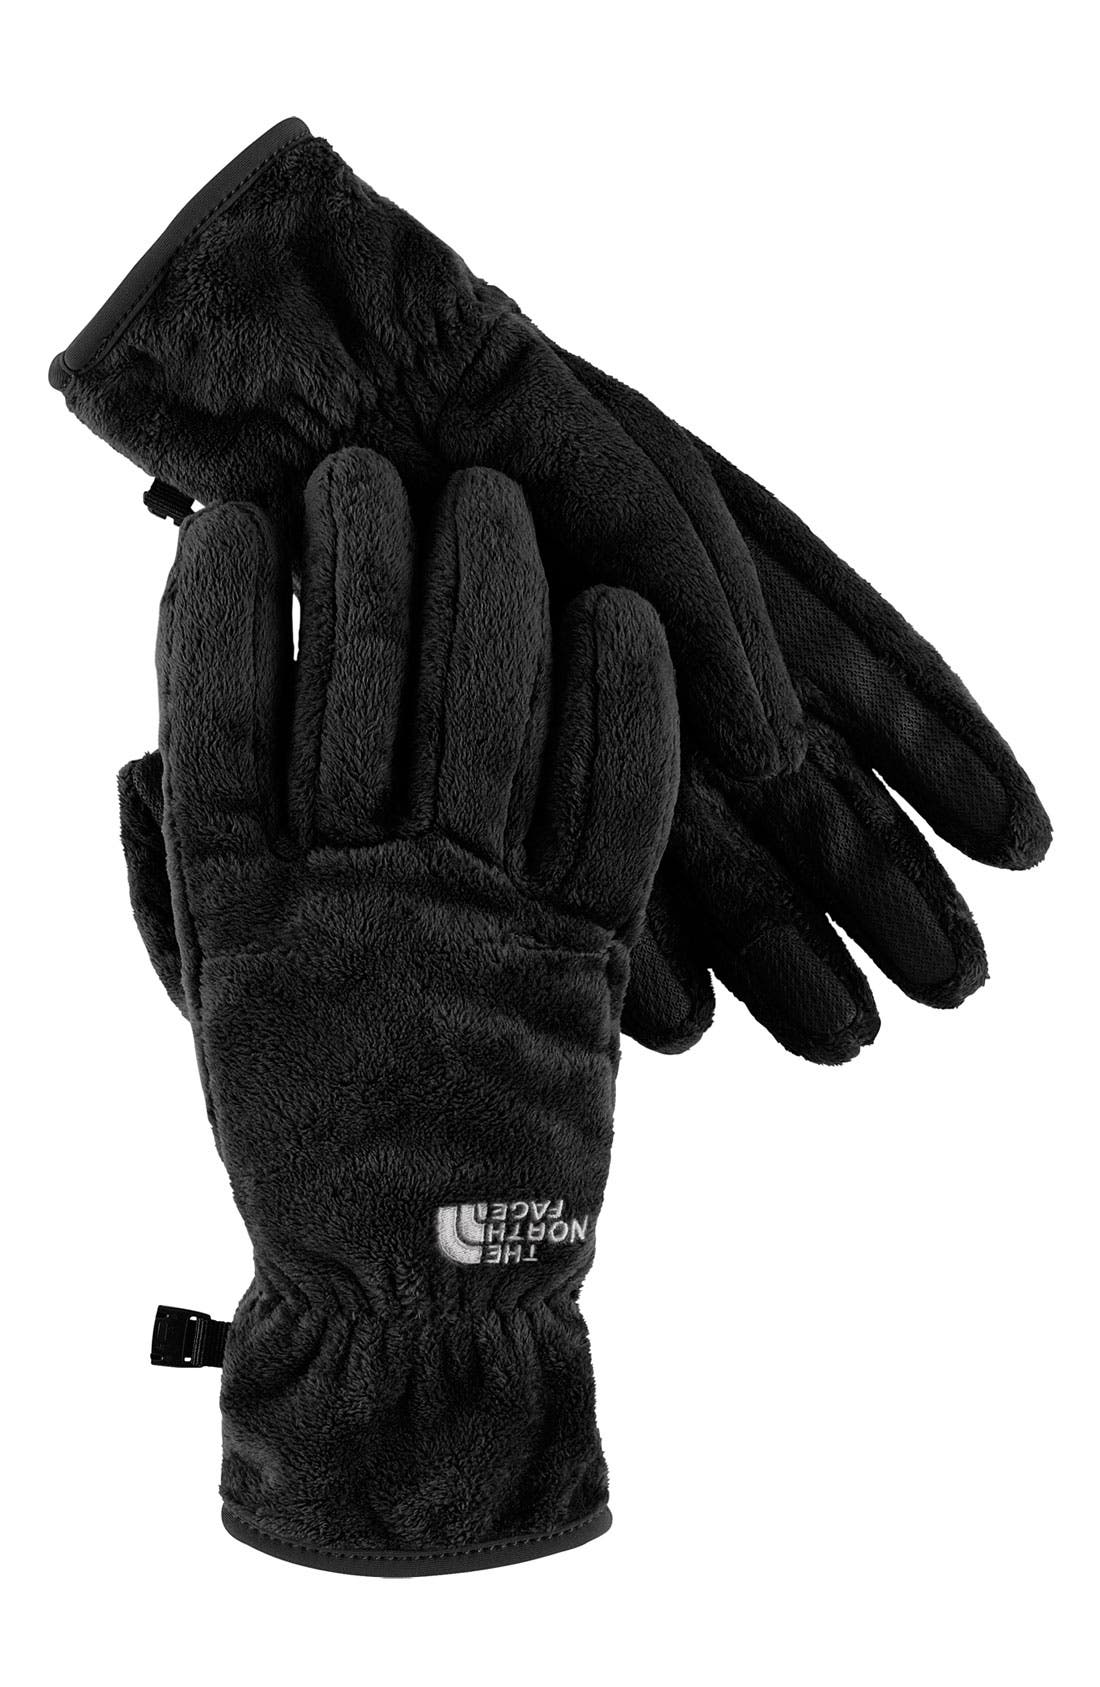 Main Image - The North Face 'Shiso' Gloves (Women)